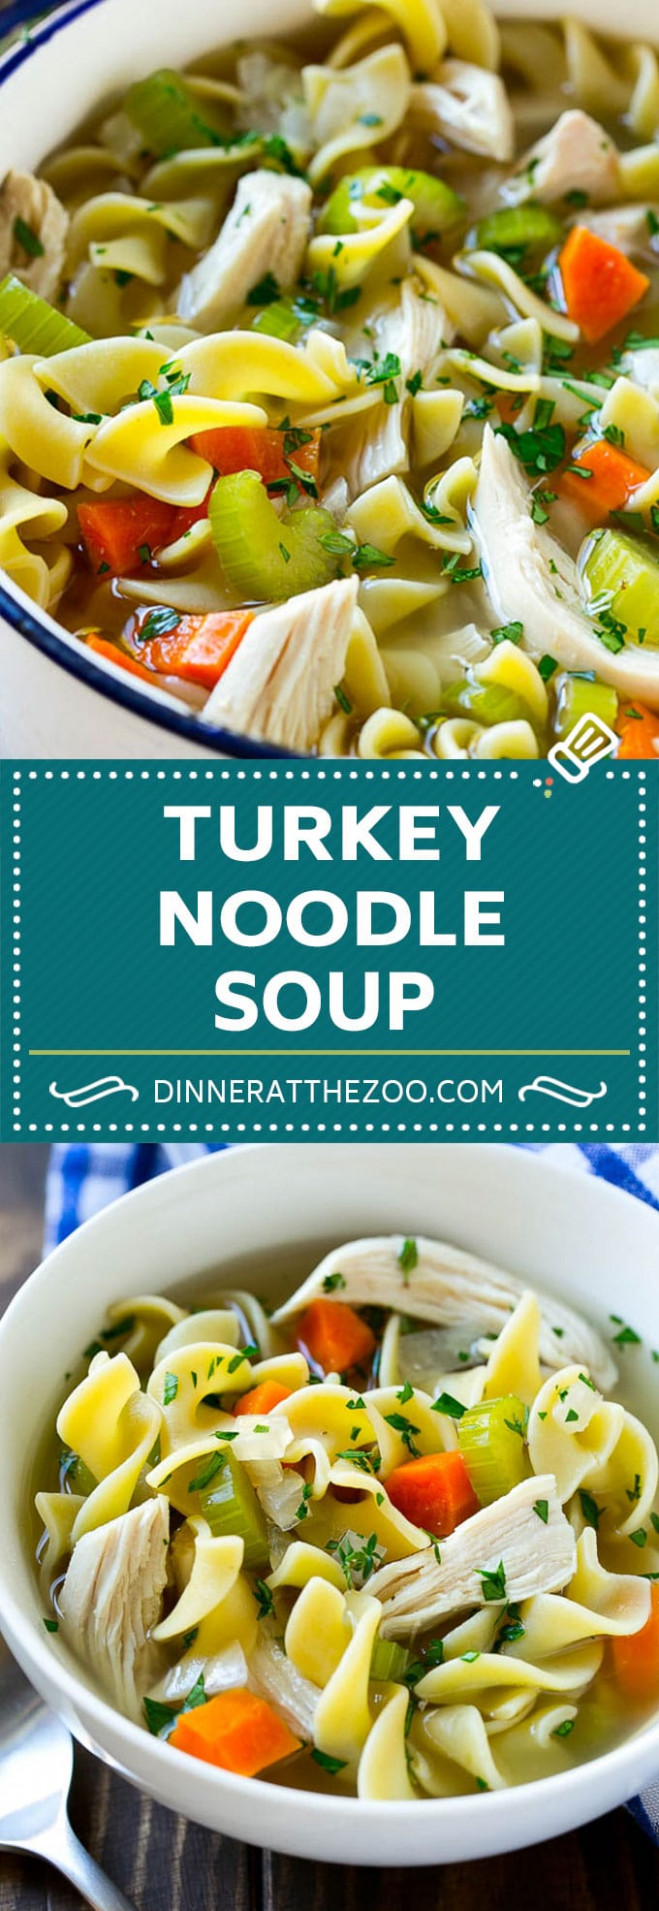 9 Fantastic Leftover Turkey Recipes - Dinner at the Zoo